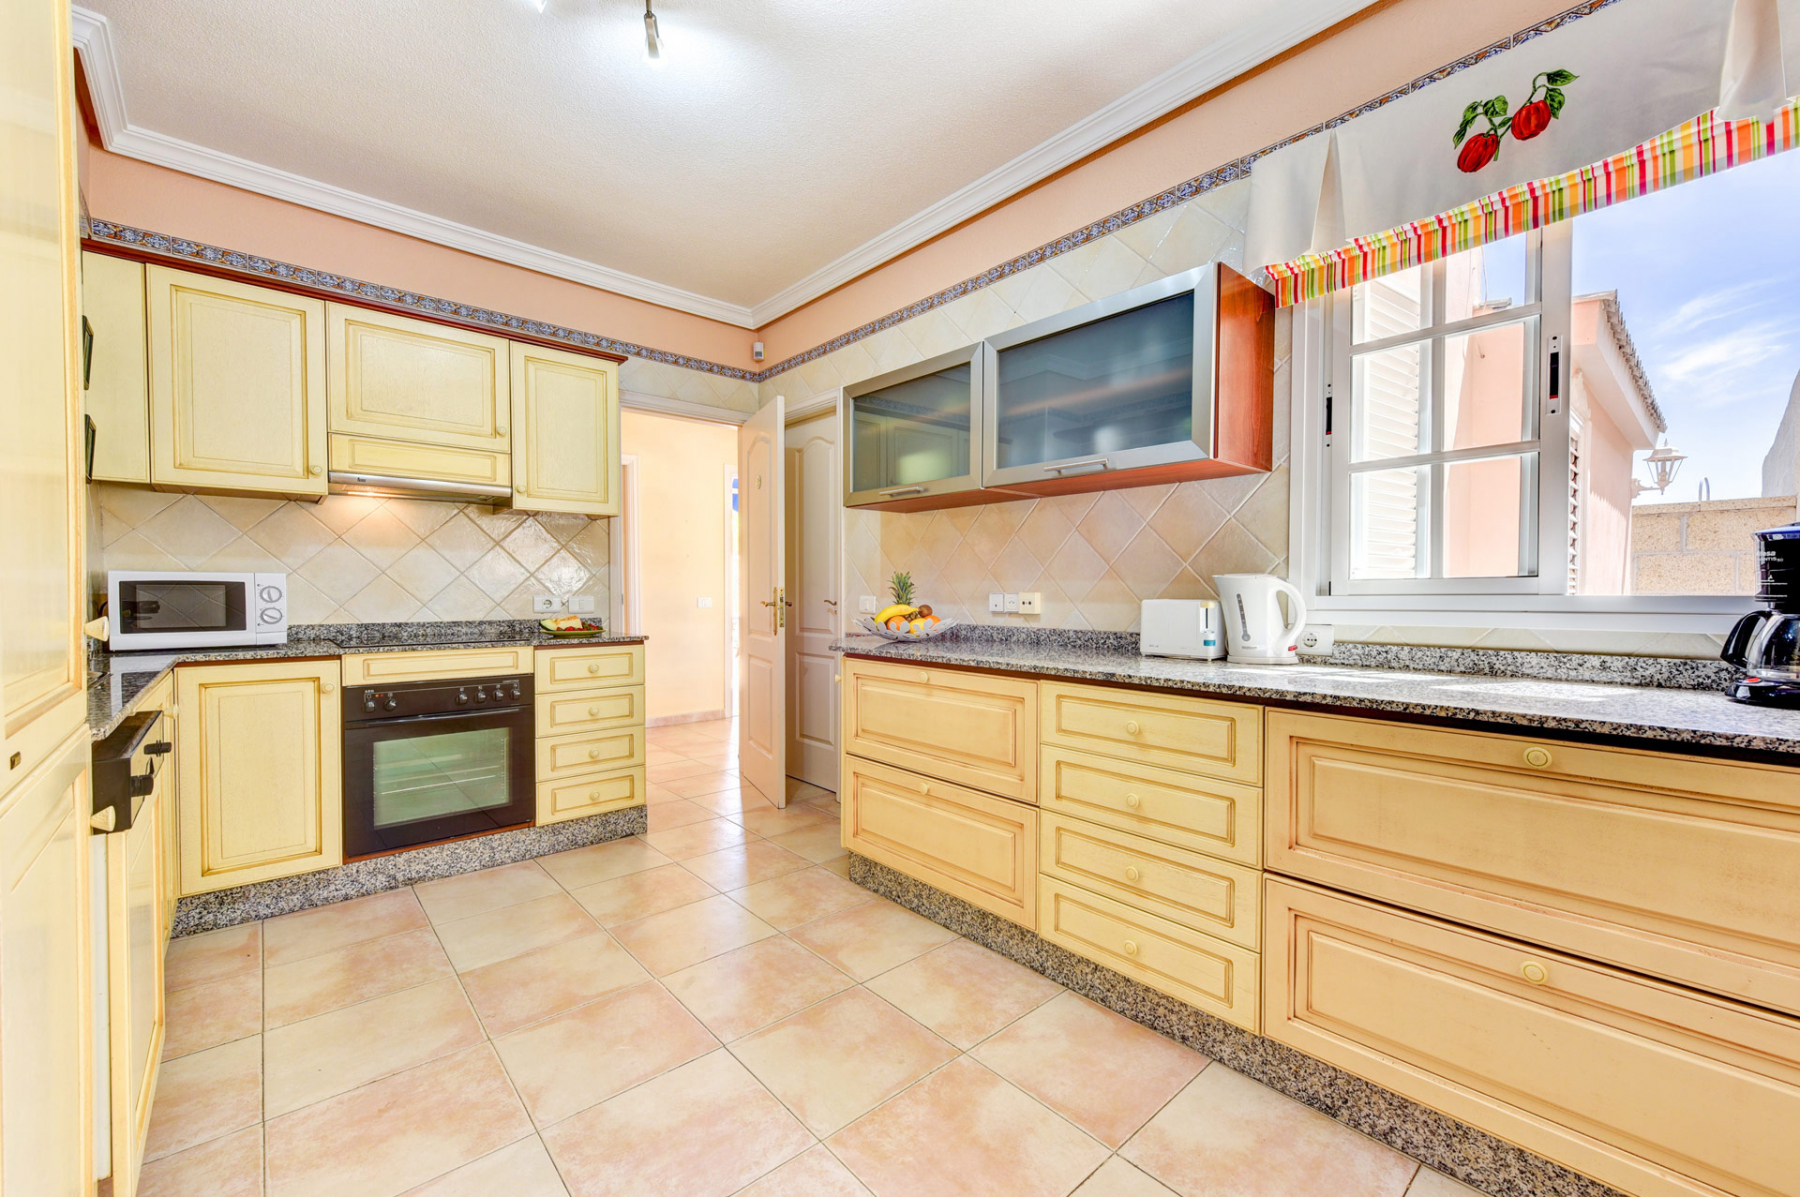 Properties for Sale in Tenerife, Canary Islands, Spain | SylkWayStar Real Estate. Villa 5 bedrooms Madroñal. Image-25086